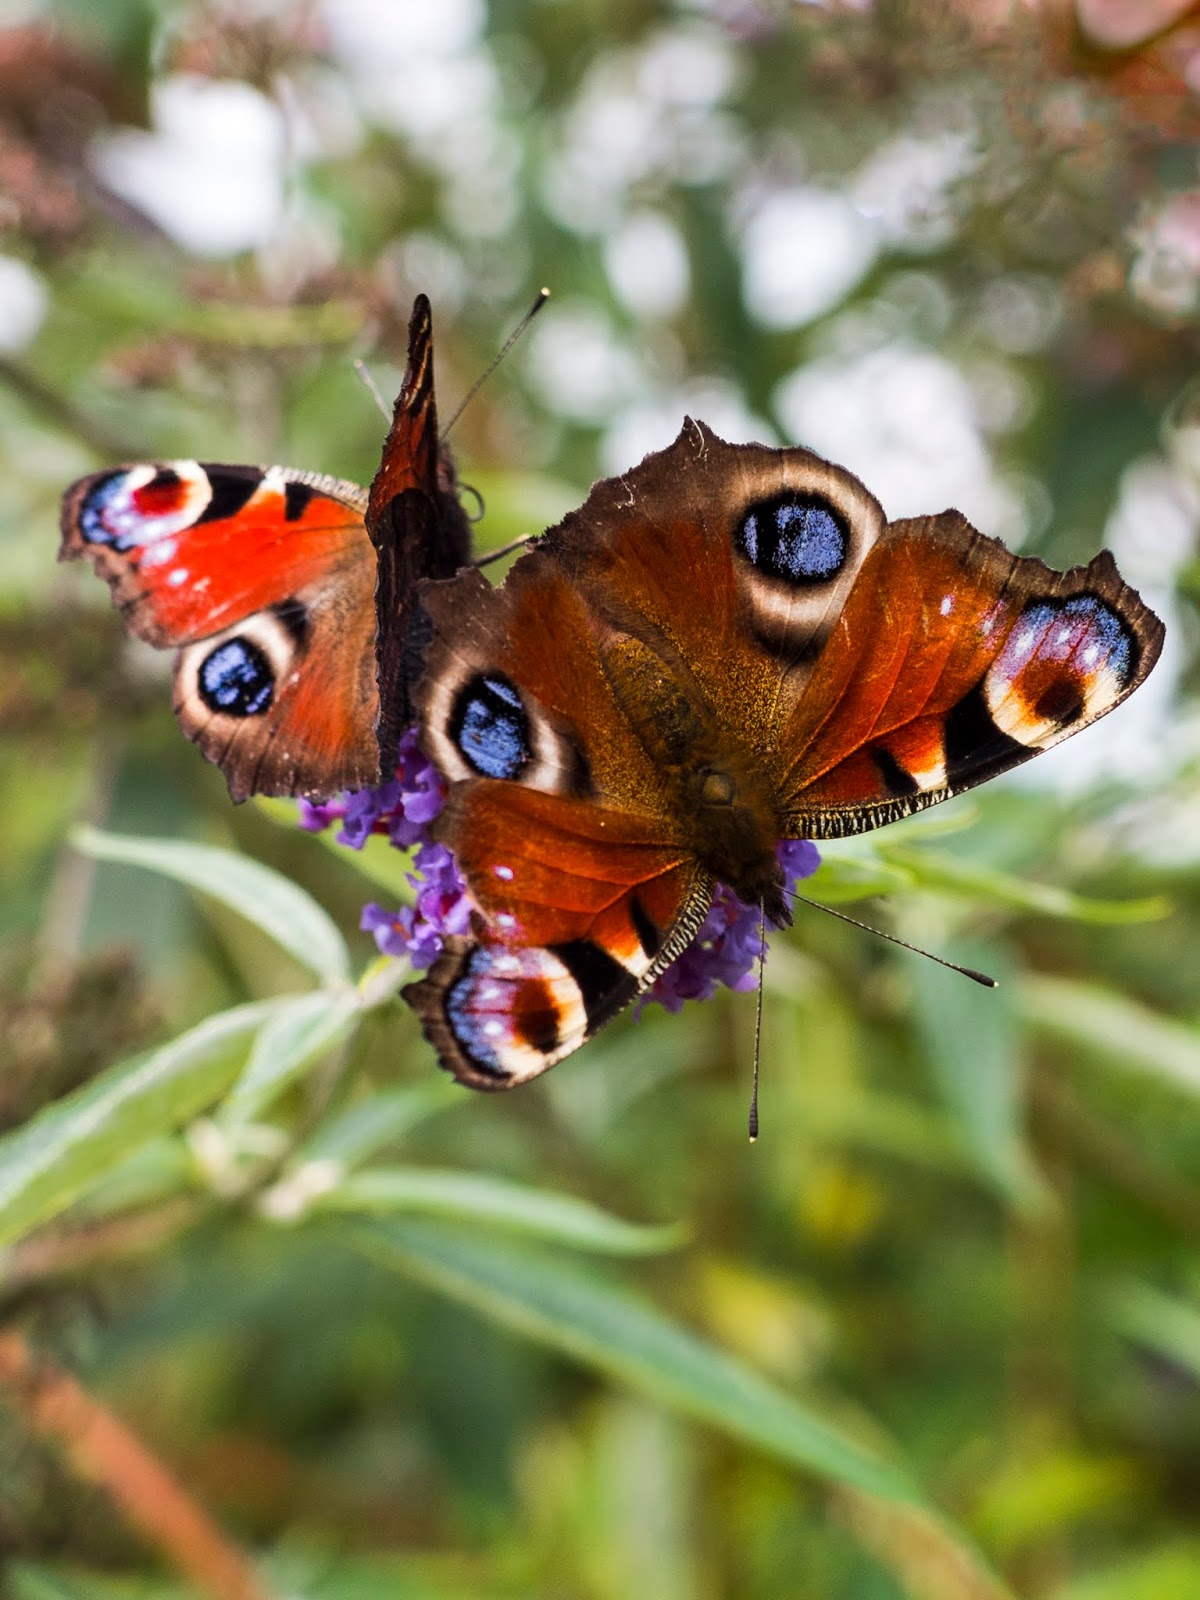 A pair of Peacock butterflies sipping nectar from purple Buddleia flowers.